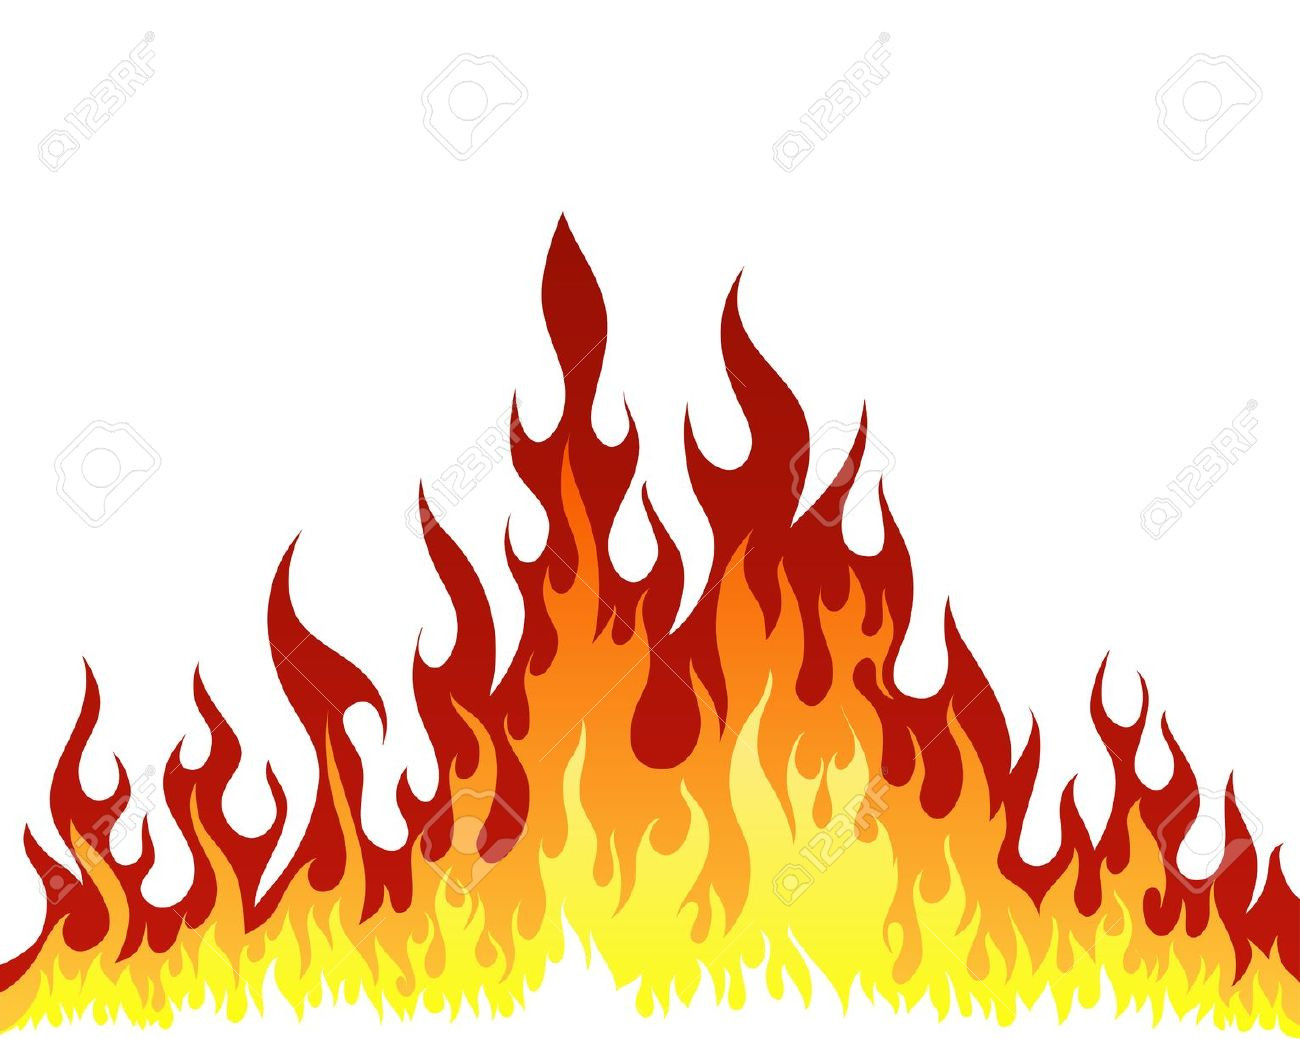 1300x1039 Flame Clip Art Free Clipart Panda Images In Flames Transitionsfv